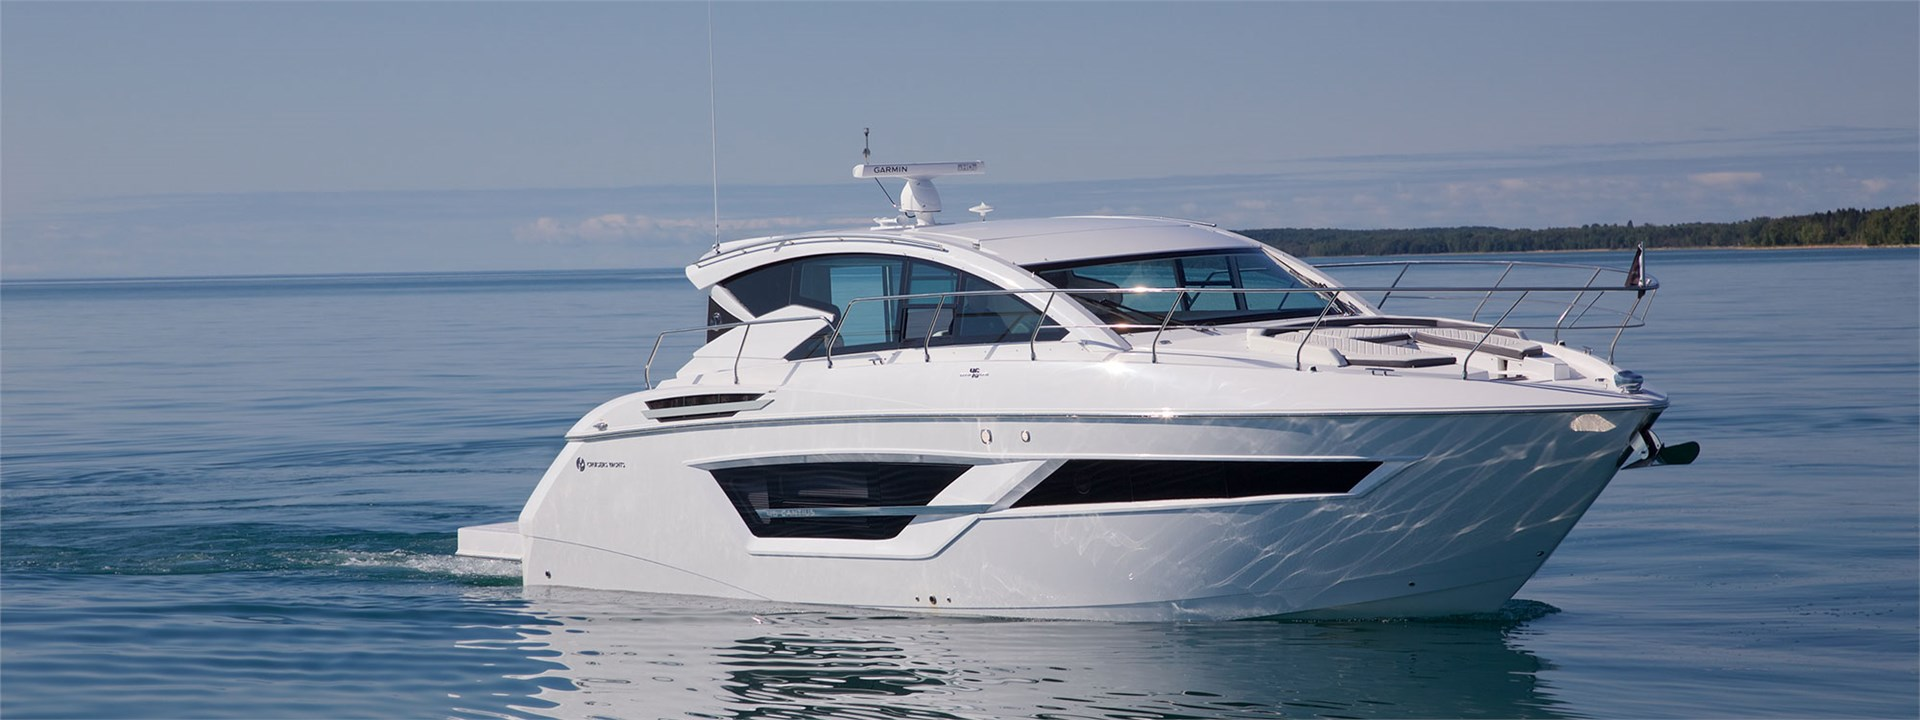 Water Shot of a Cruiser Yachts 46 Cantius